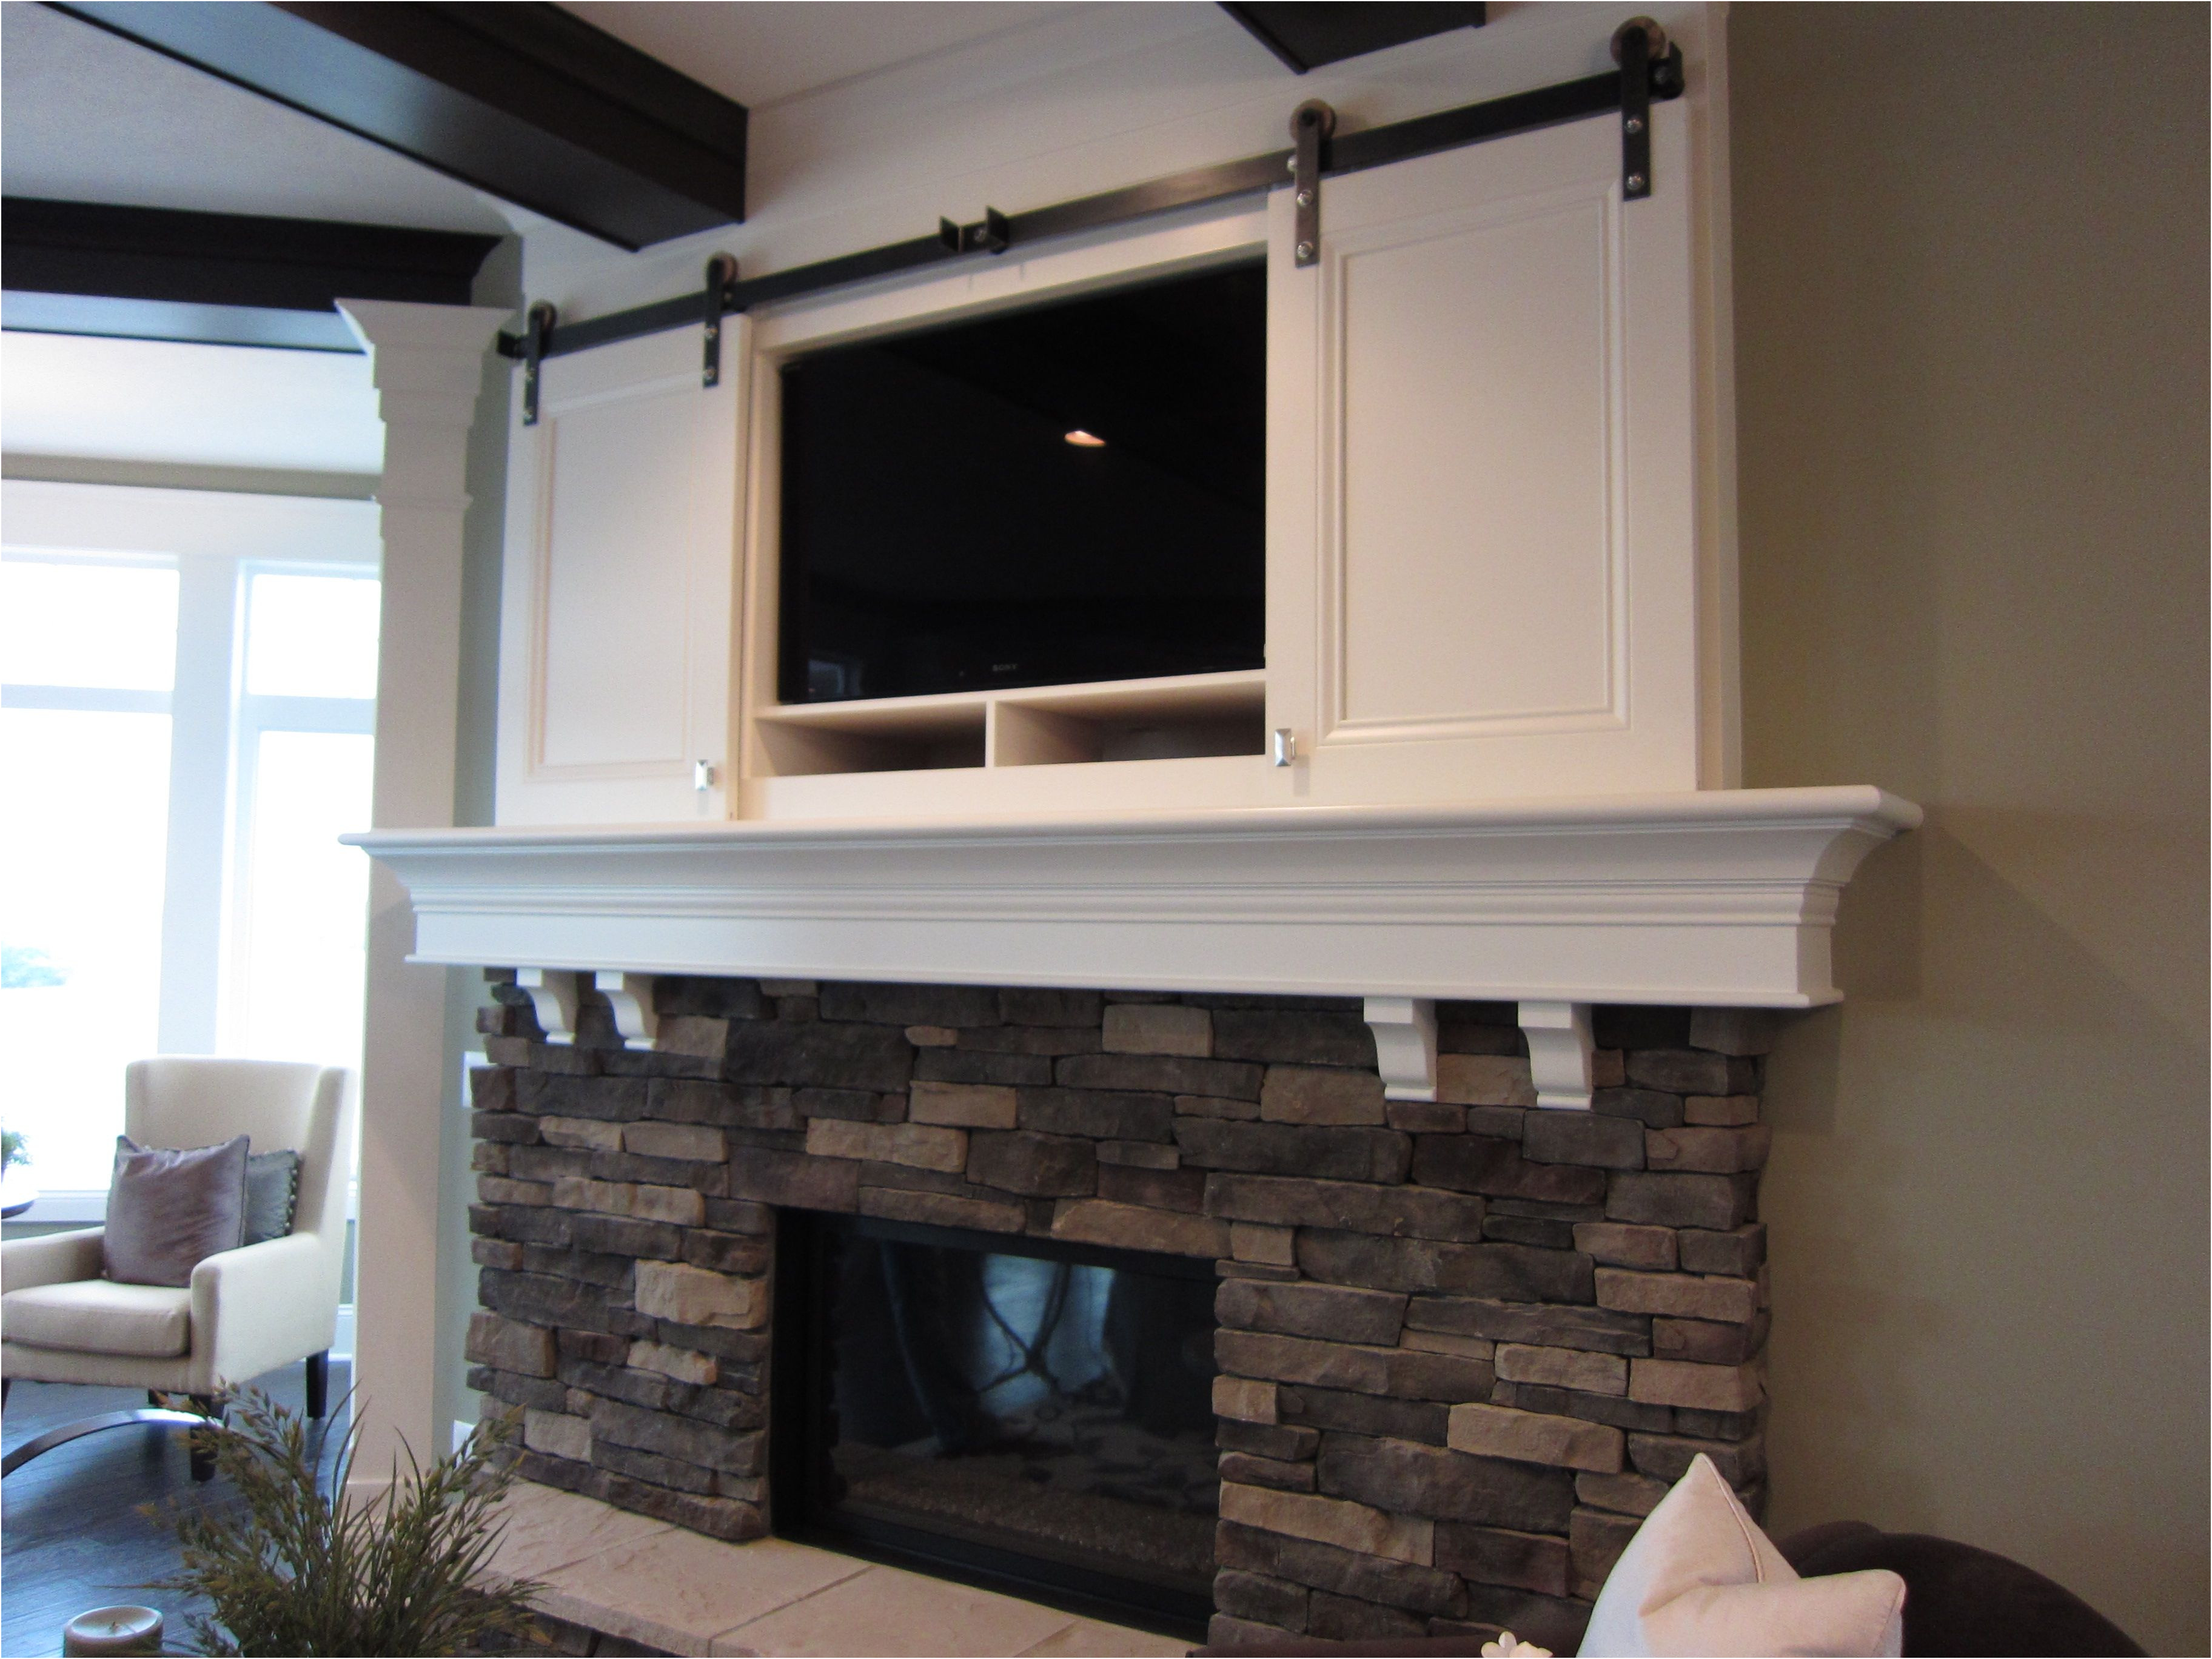 Elegant Mantel Ideas for Fireplace